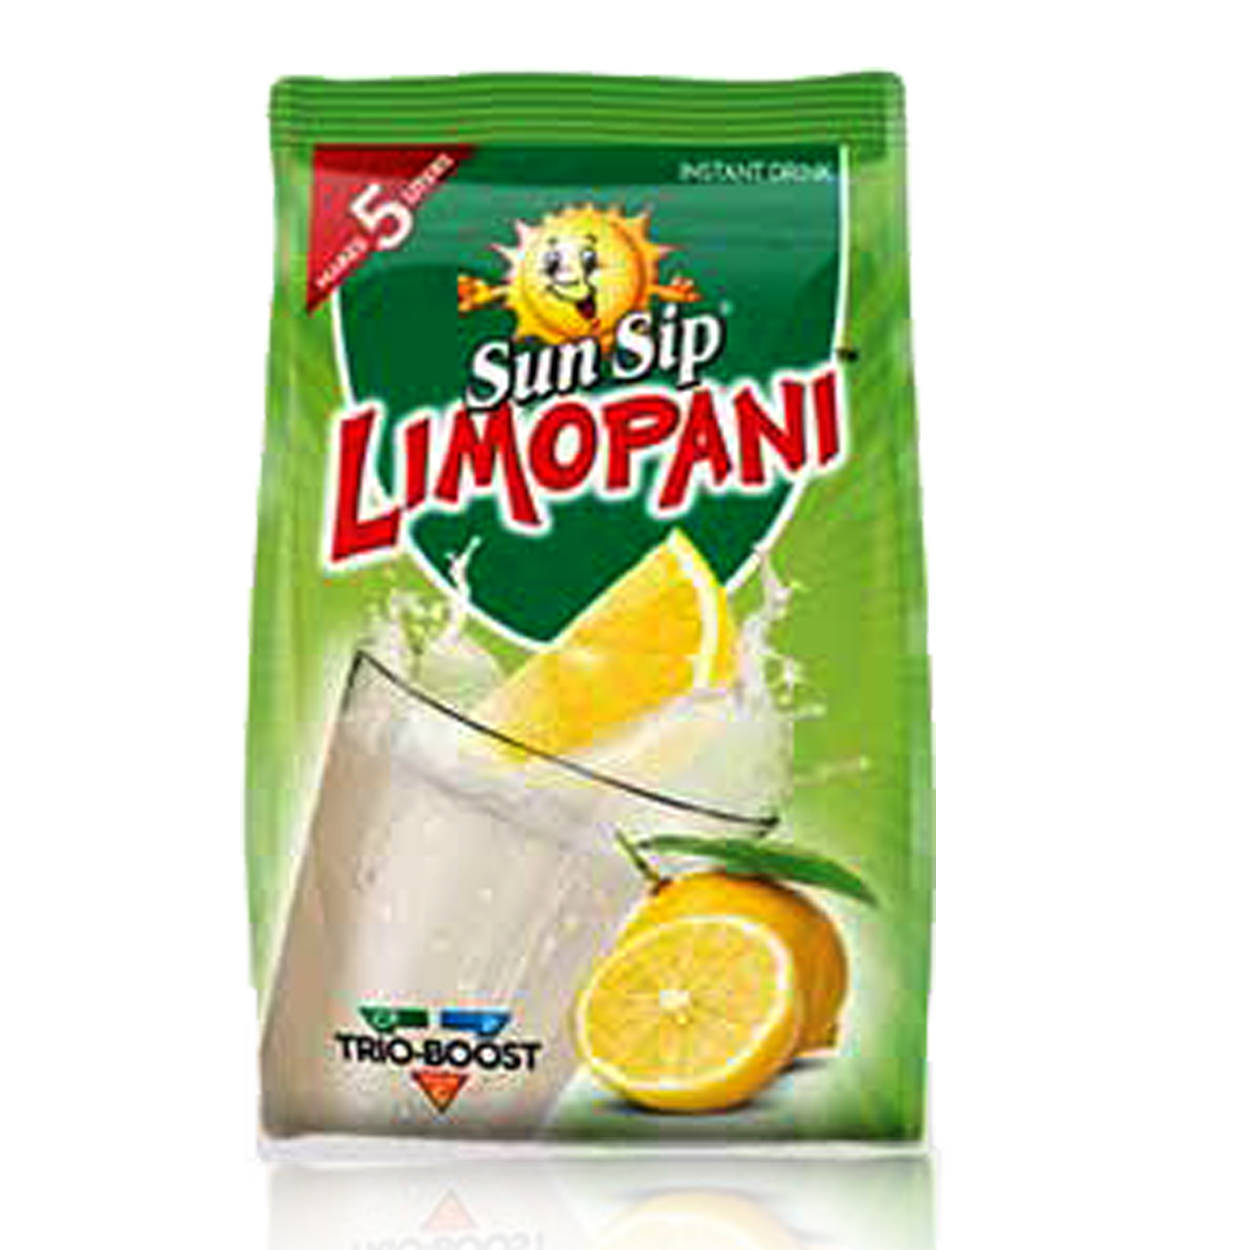 SunSip Limopani Powder Drink Pouch 340gm